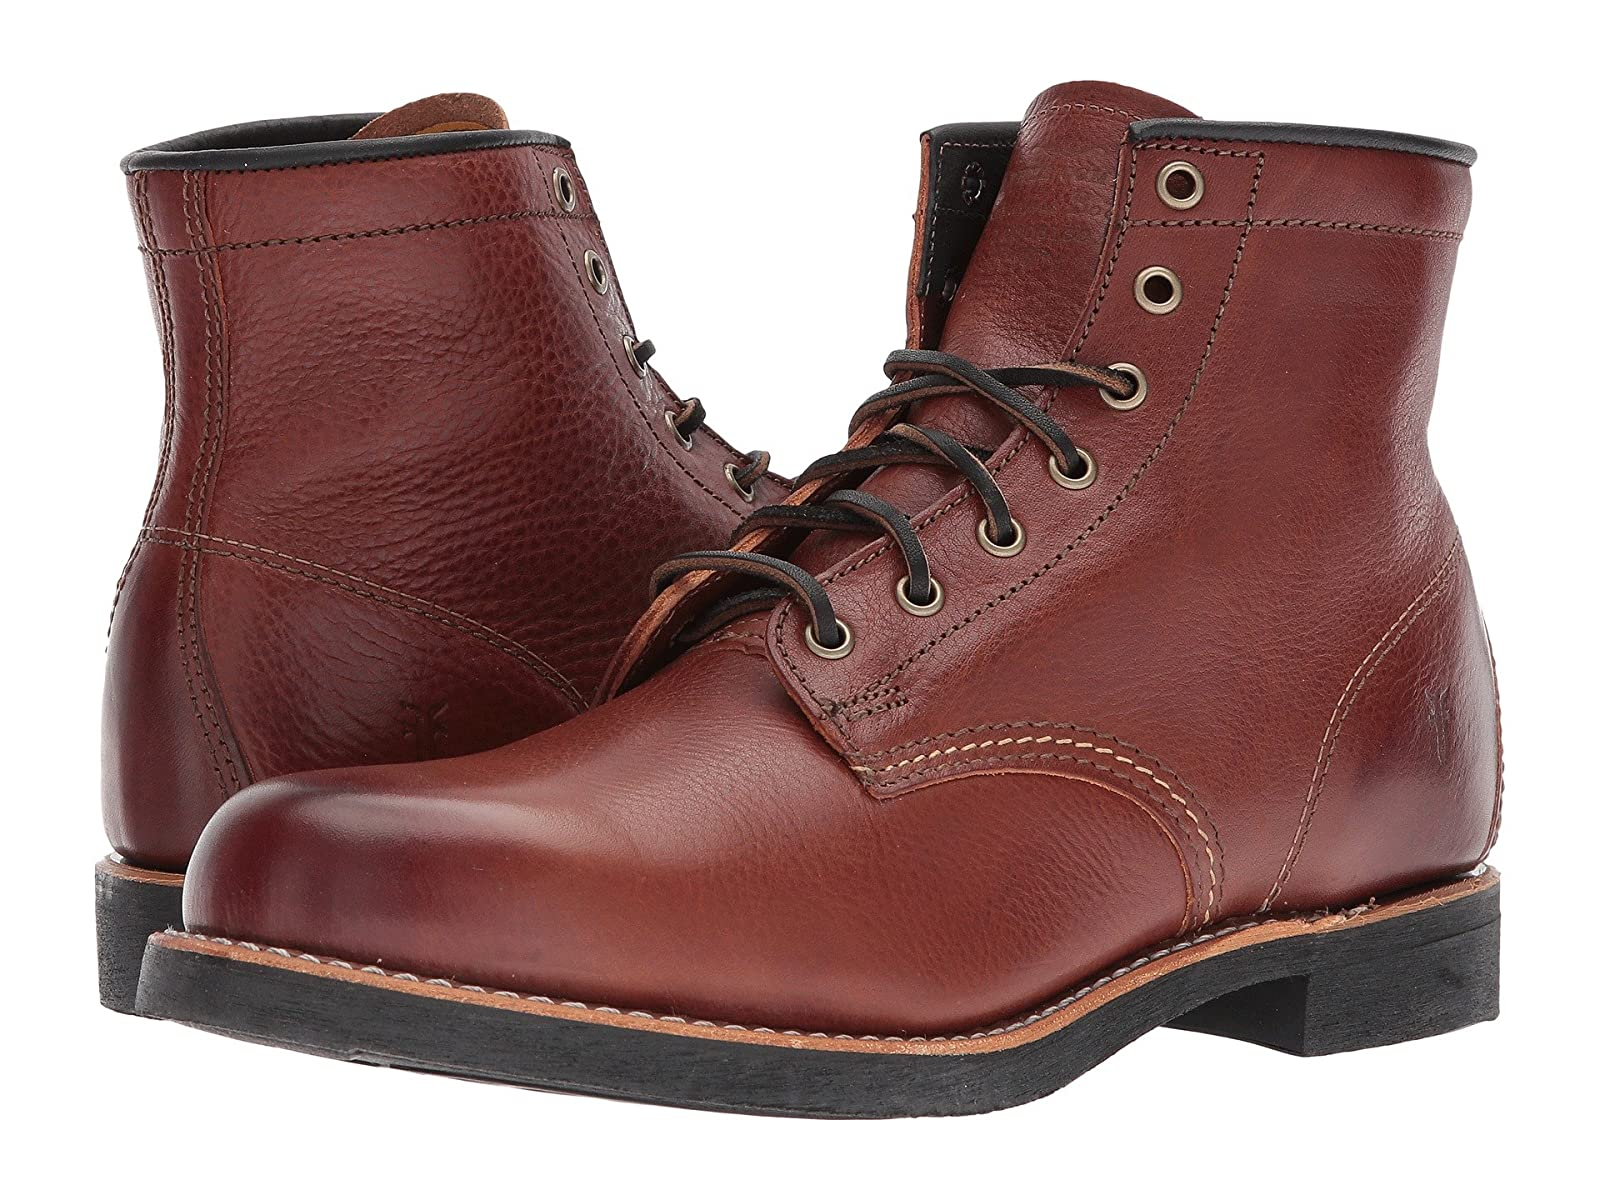 Frye Arkansas Mid LaceCheap and distinctive eye-catching shoes